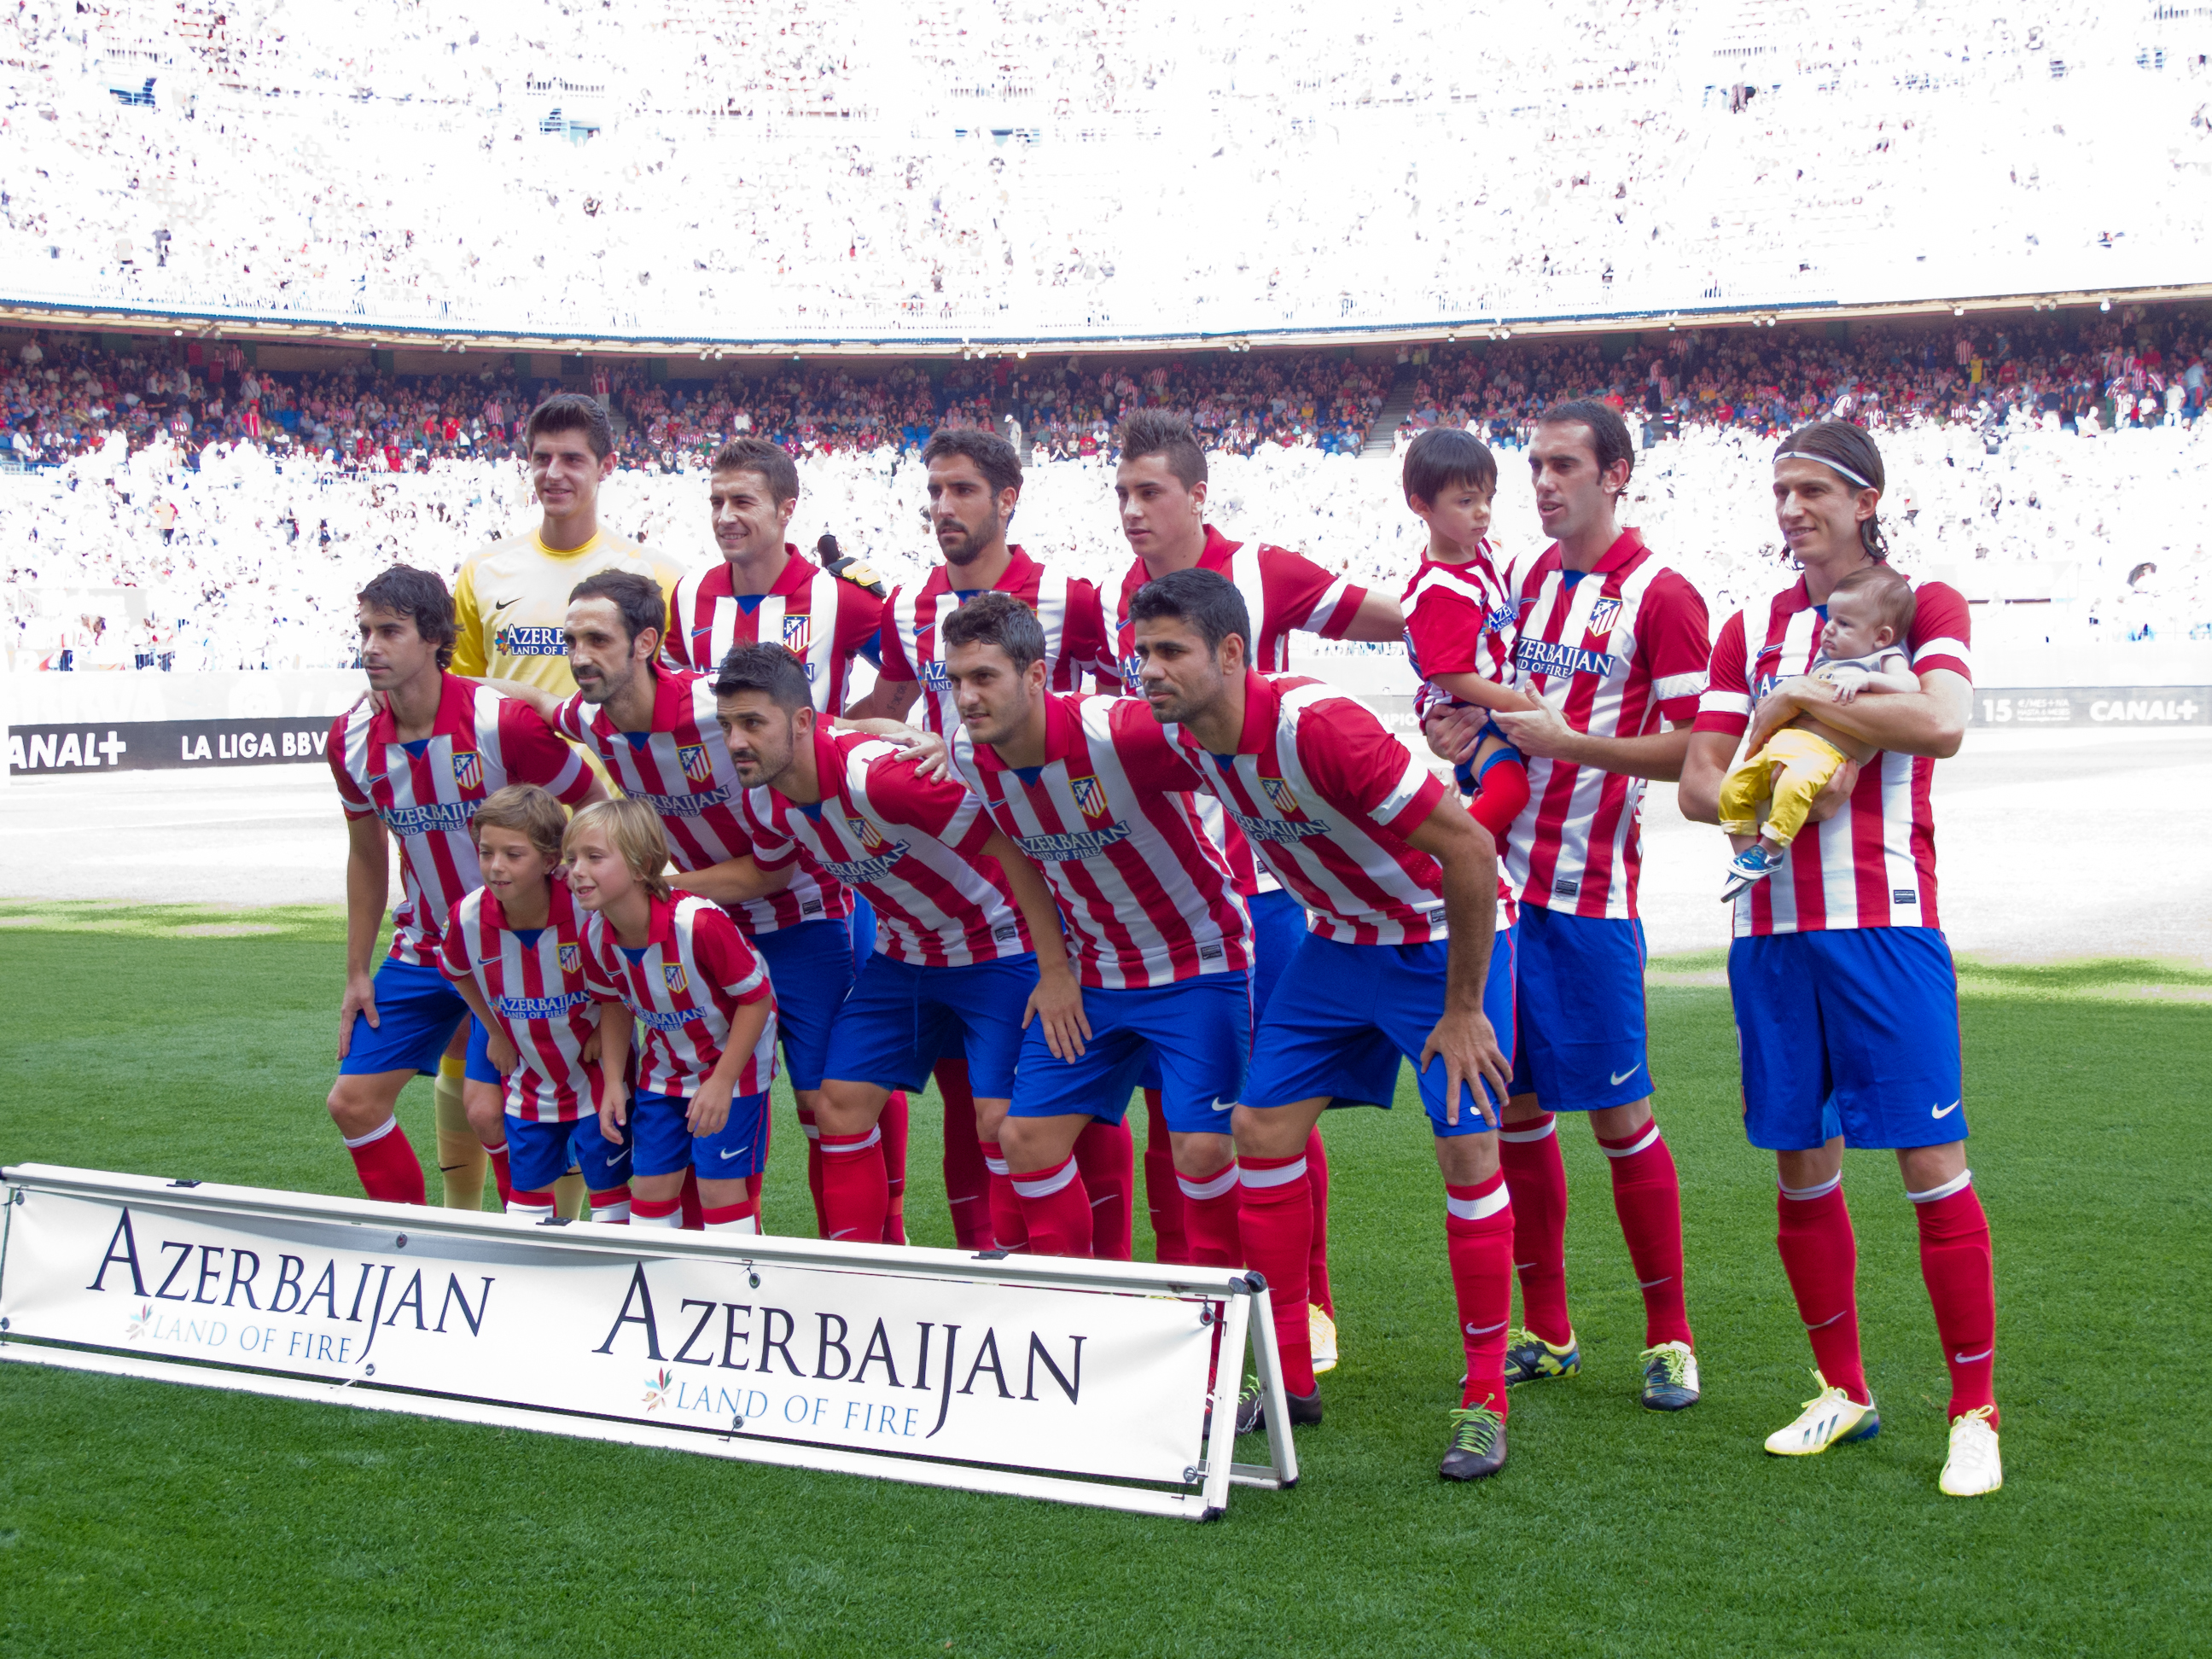 2013 14 Atletico Madrid Season Wikipedia